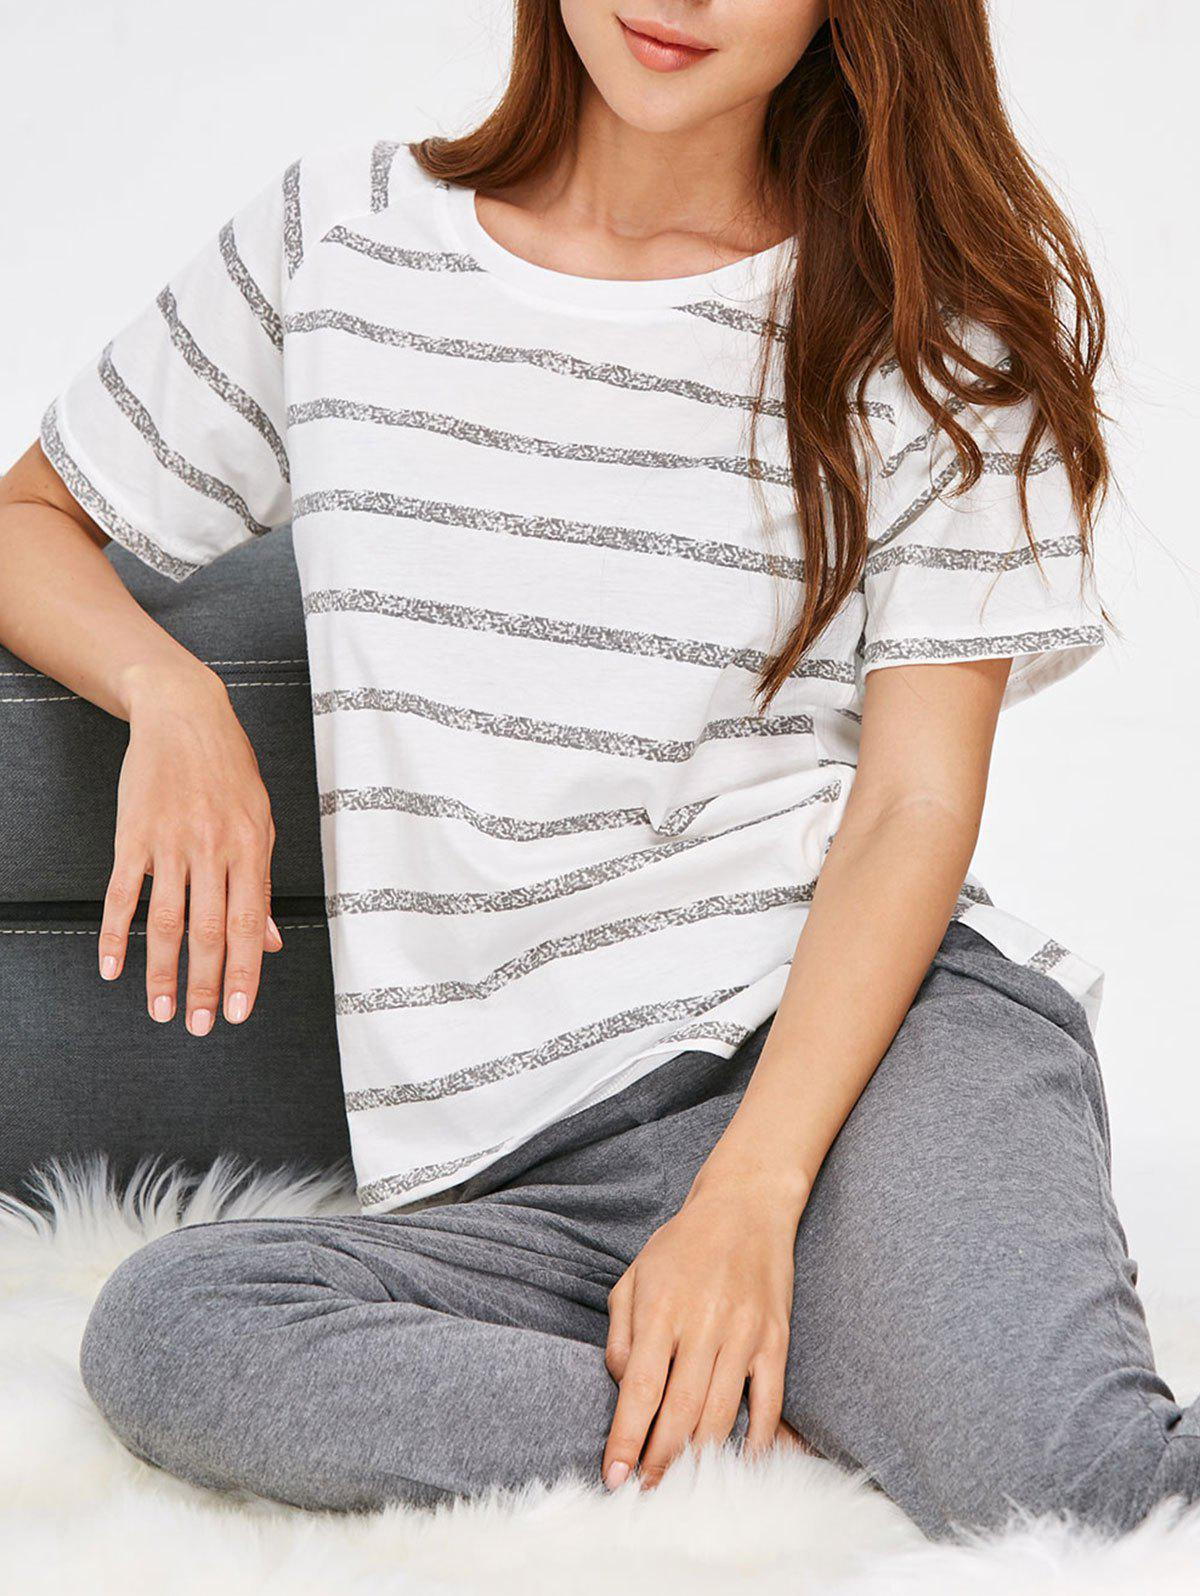 Affordable Sleep Set Slit Striped Top and Pants